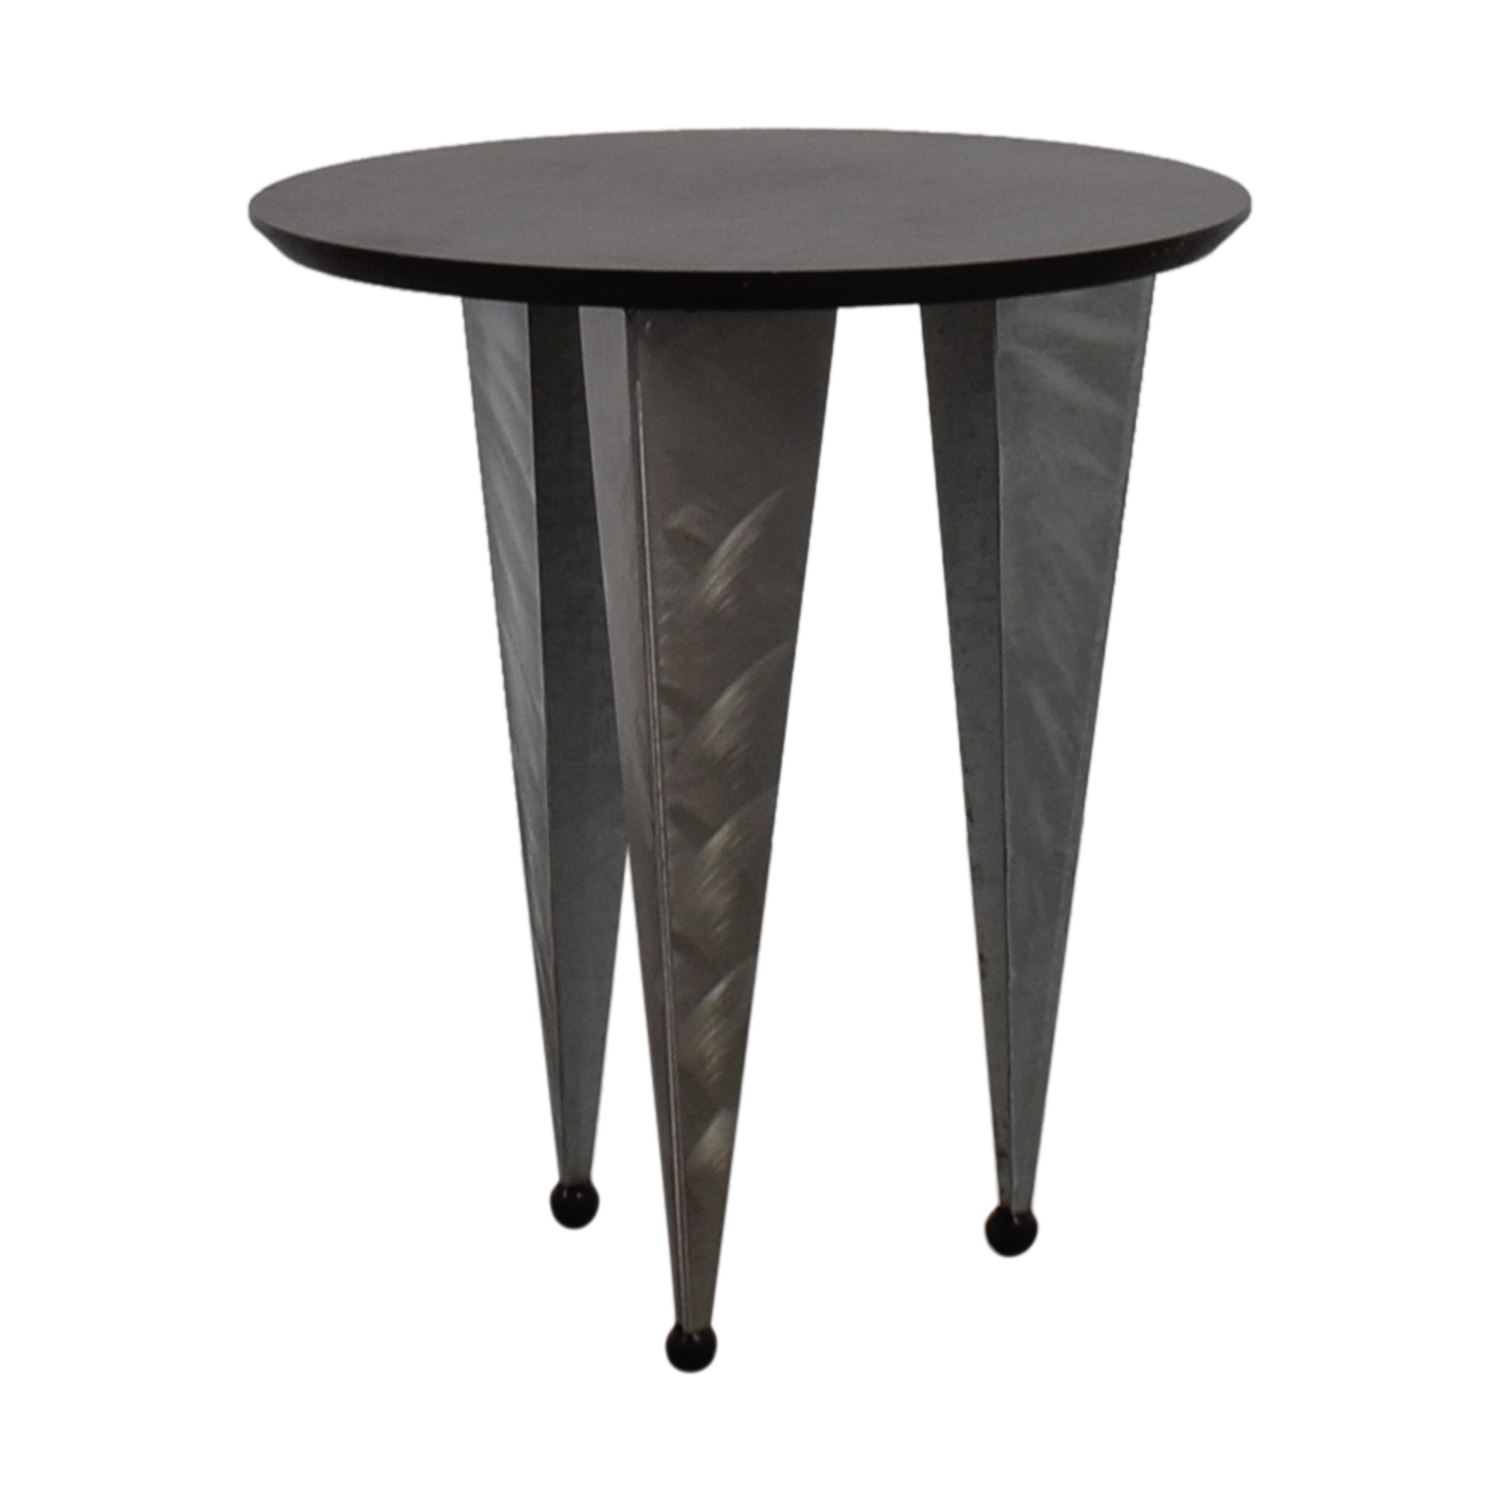 Art Deco Black Round Top With Metallic Legs End Table Coupon